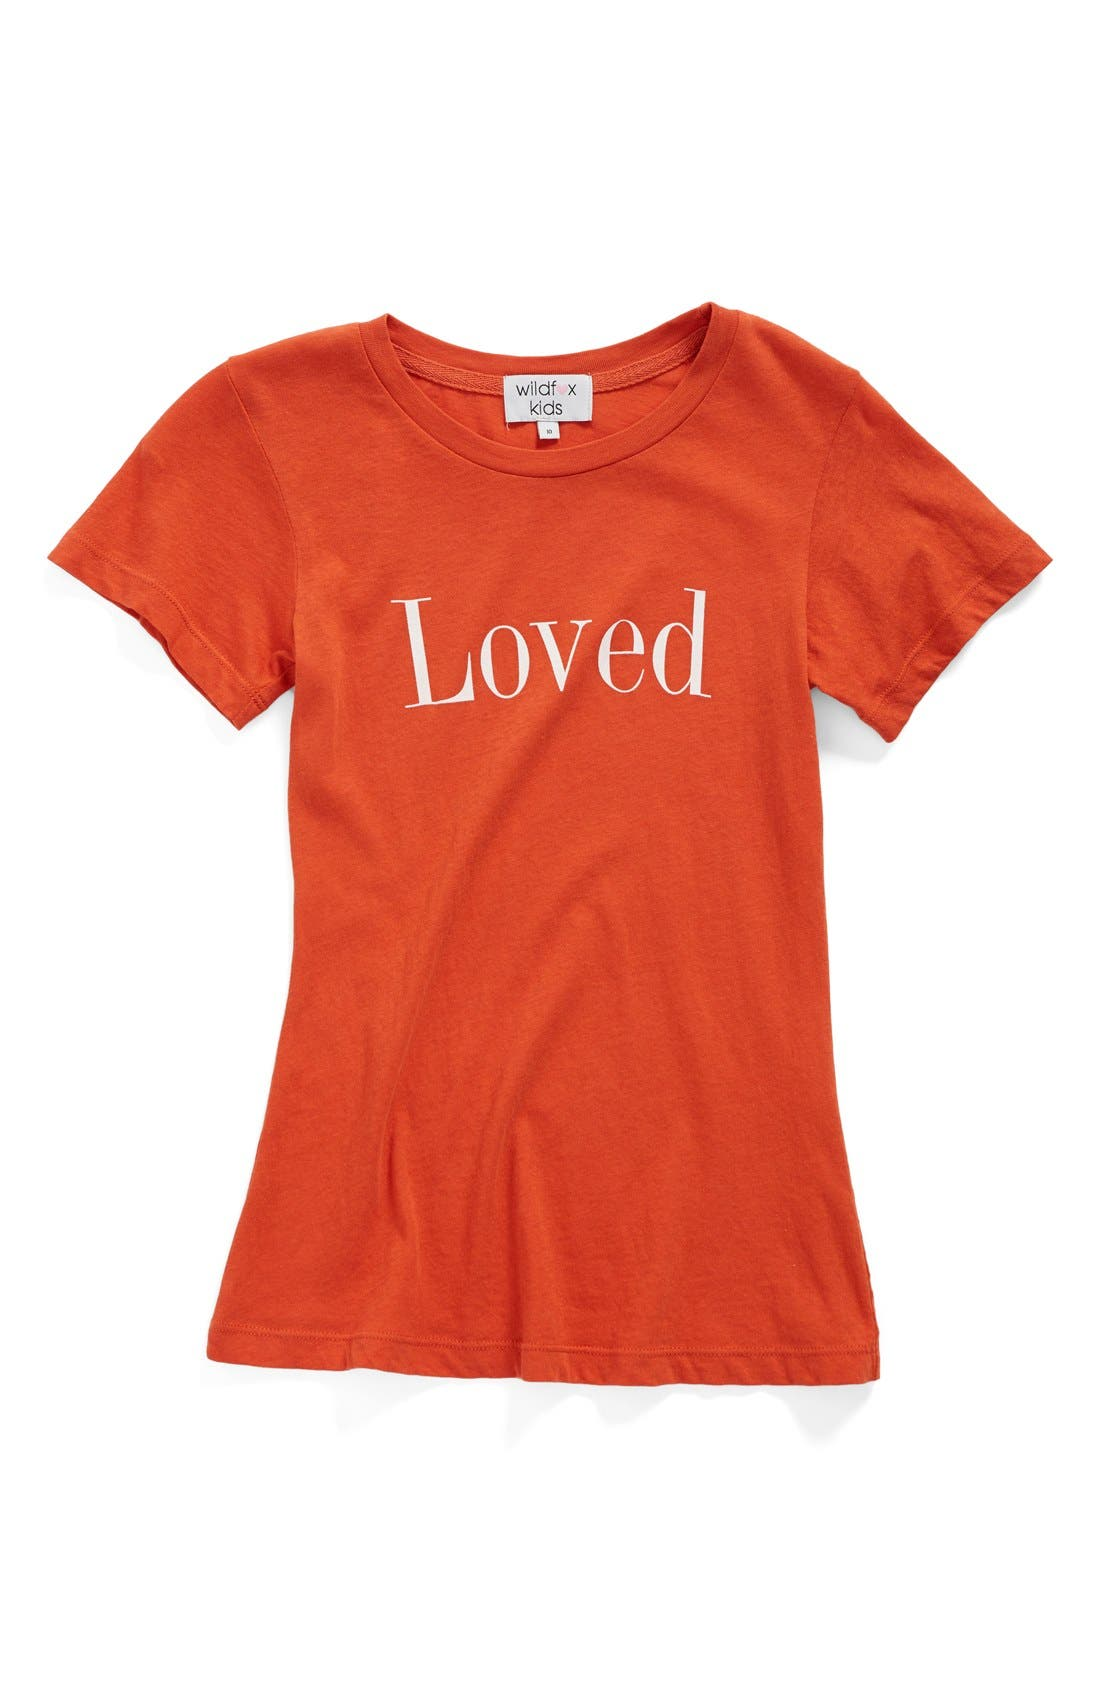 Alternate Image 1 Selected - Wildfox 'Loved' Graphic Cotton Tee (Little Girls & Big Girls)